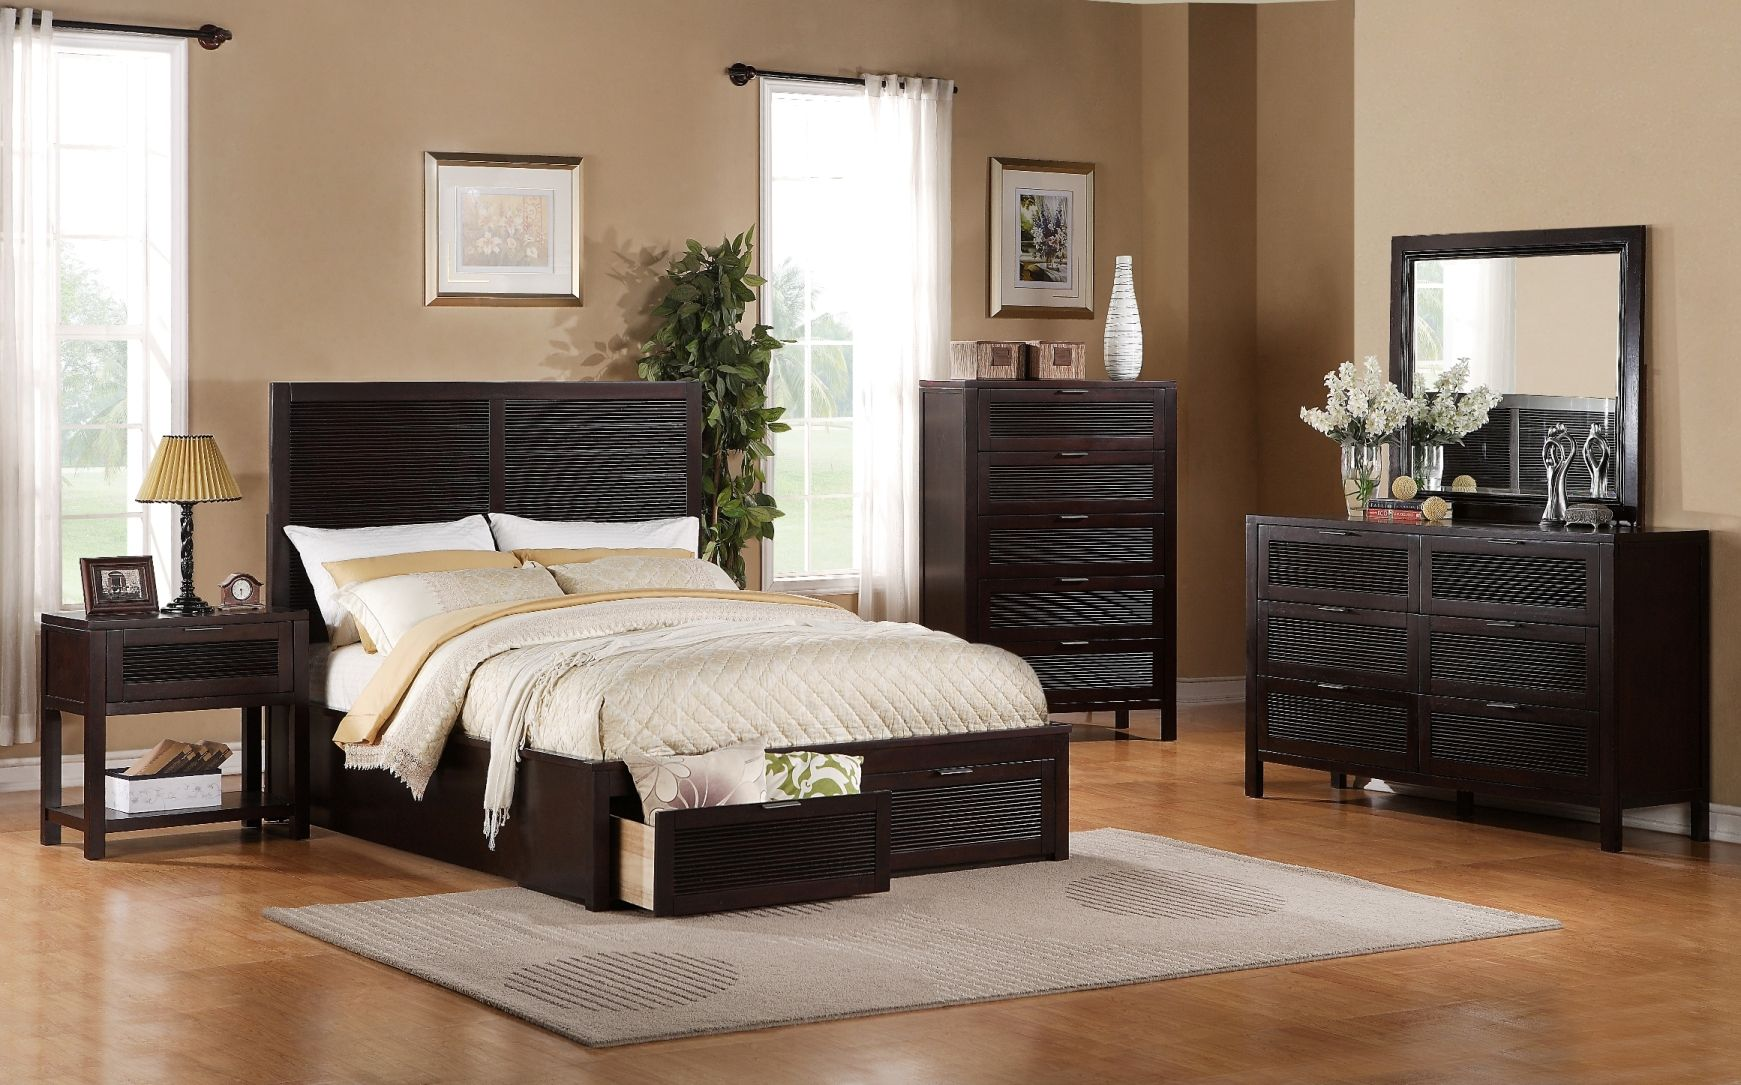 Bedroom set prices, are they really worth it | Bedroom ...